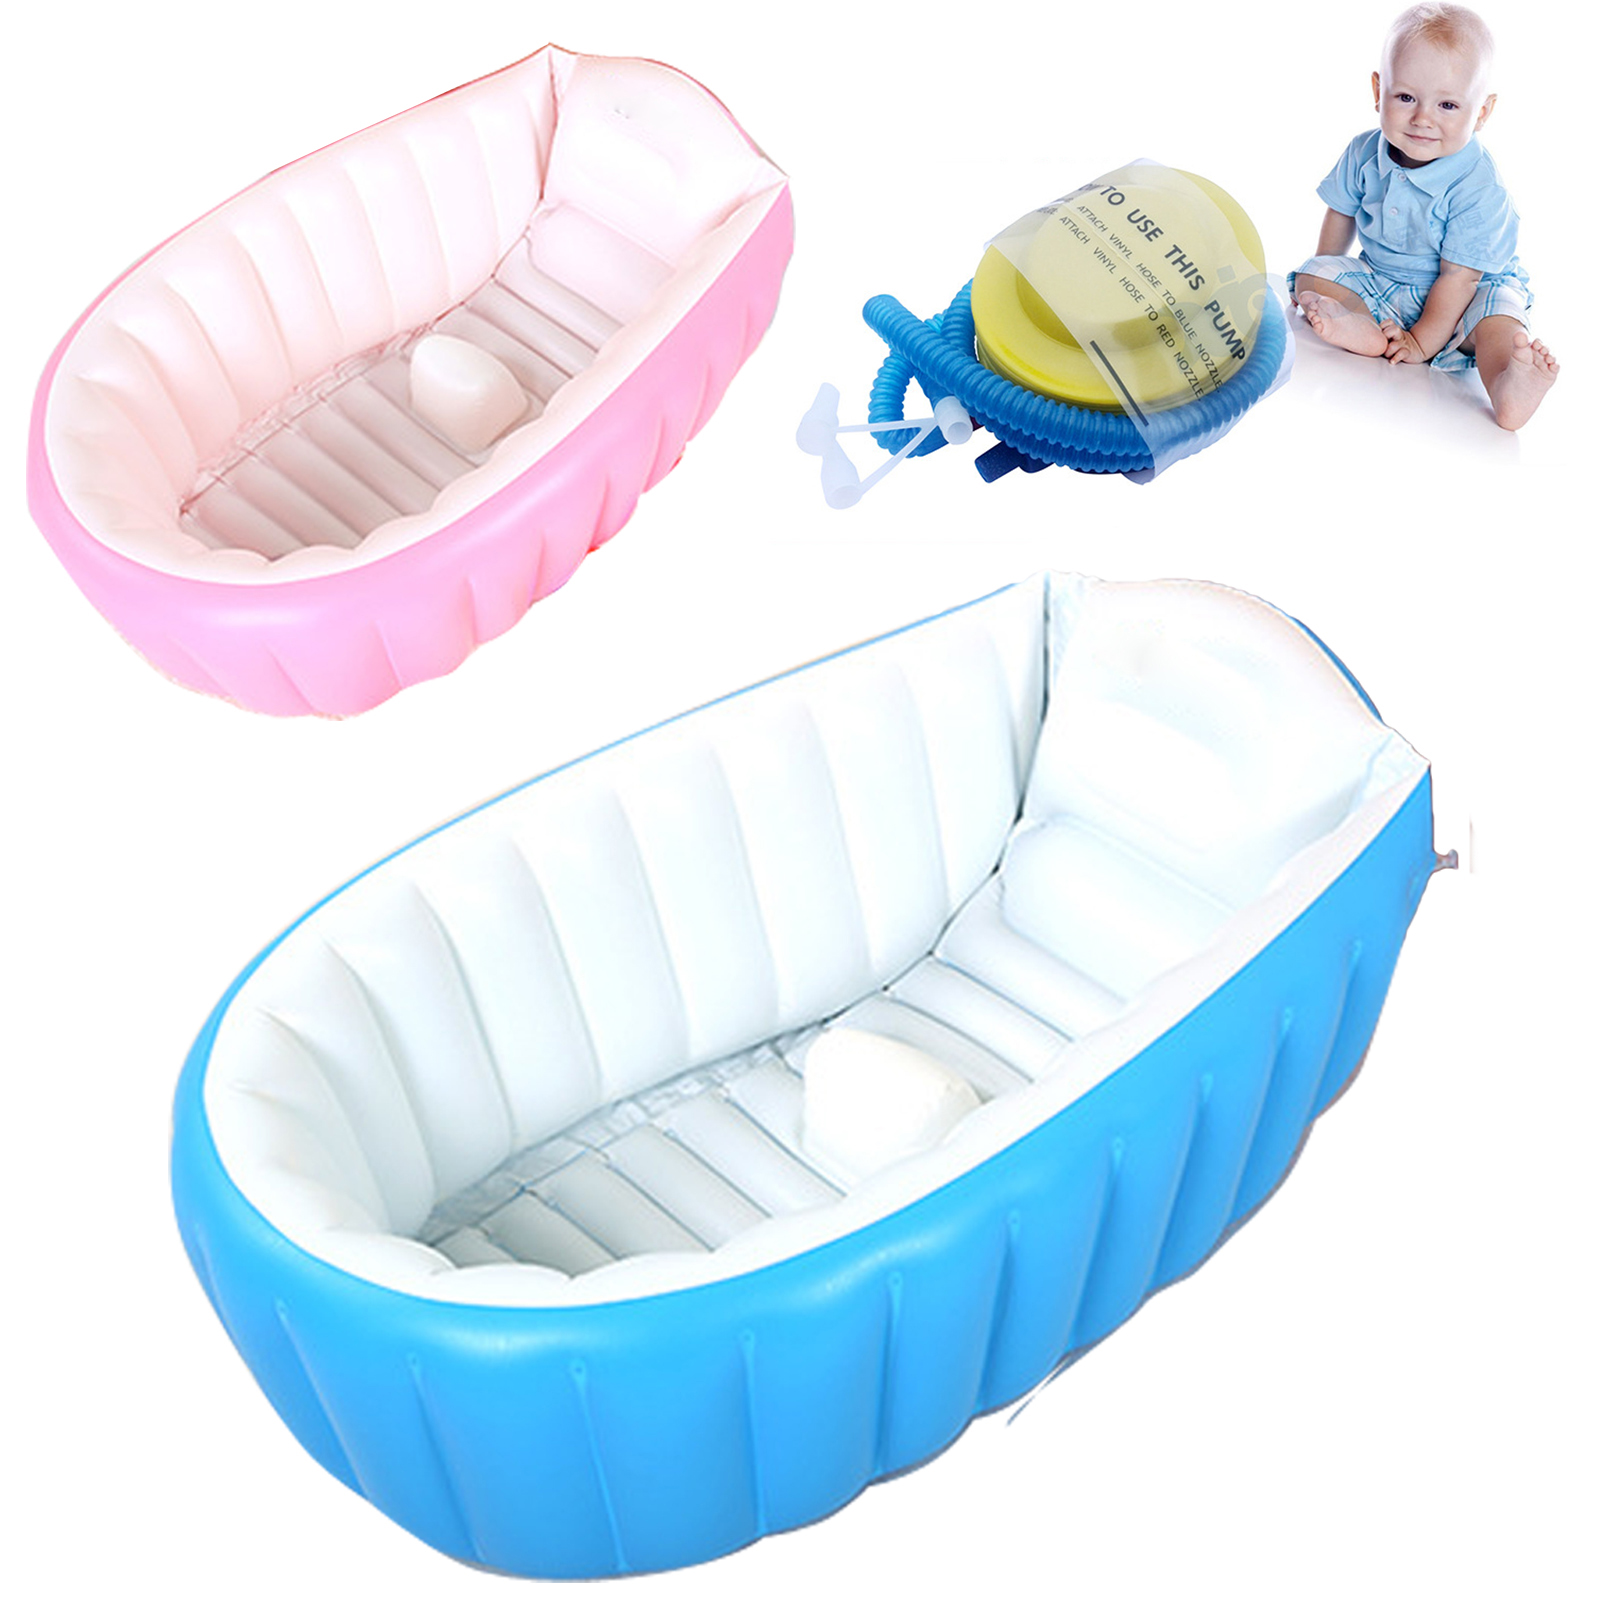 2017 Real Top Fashion Baby Ring Inflatable Tubs Infant Inflatable ...